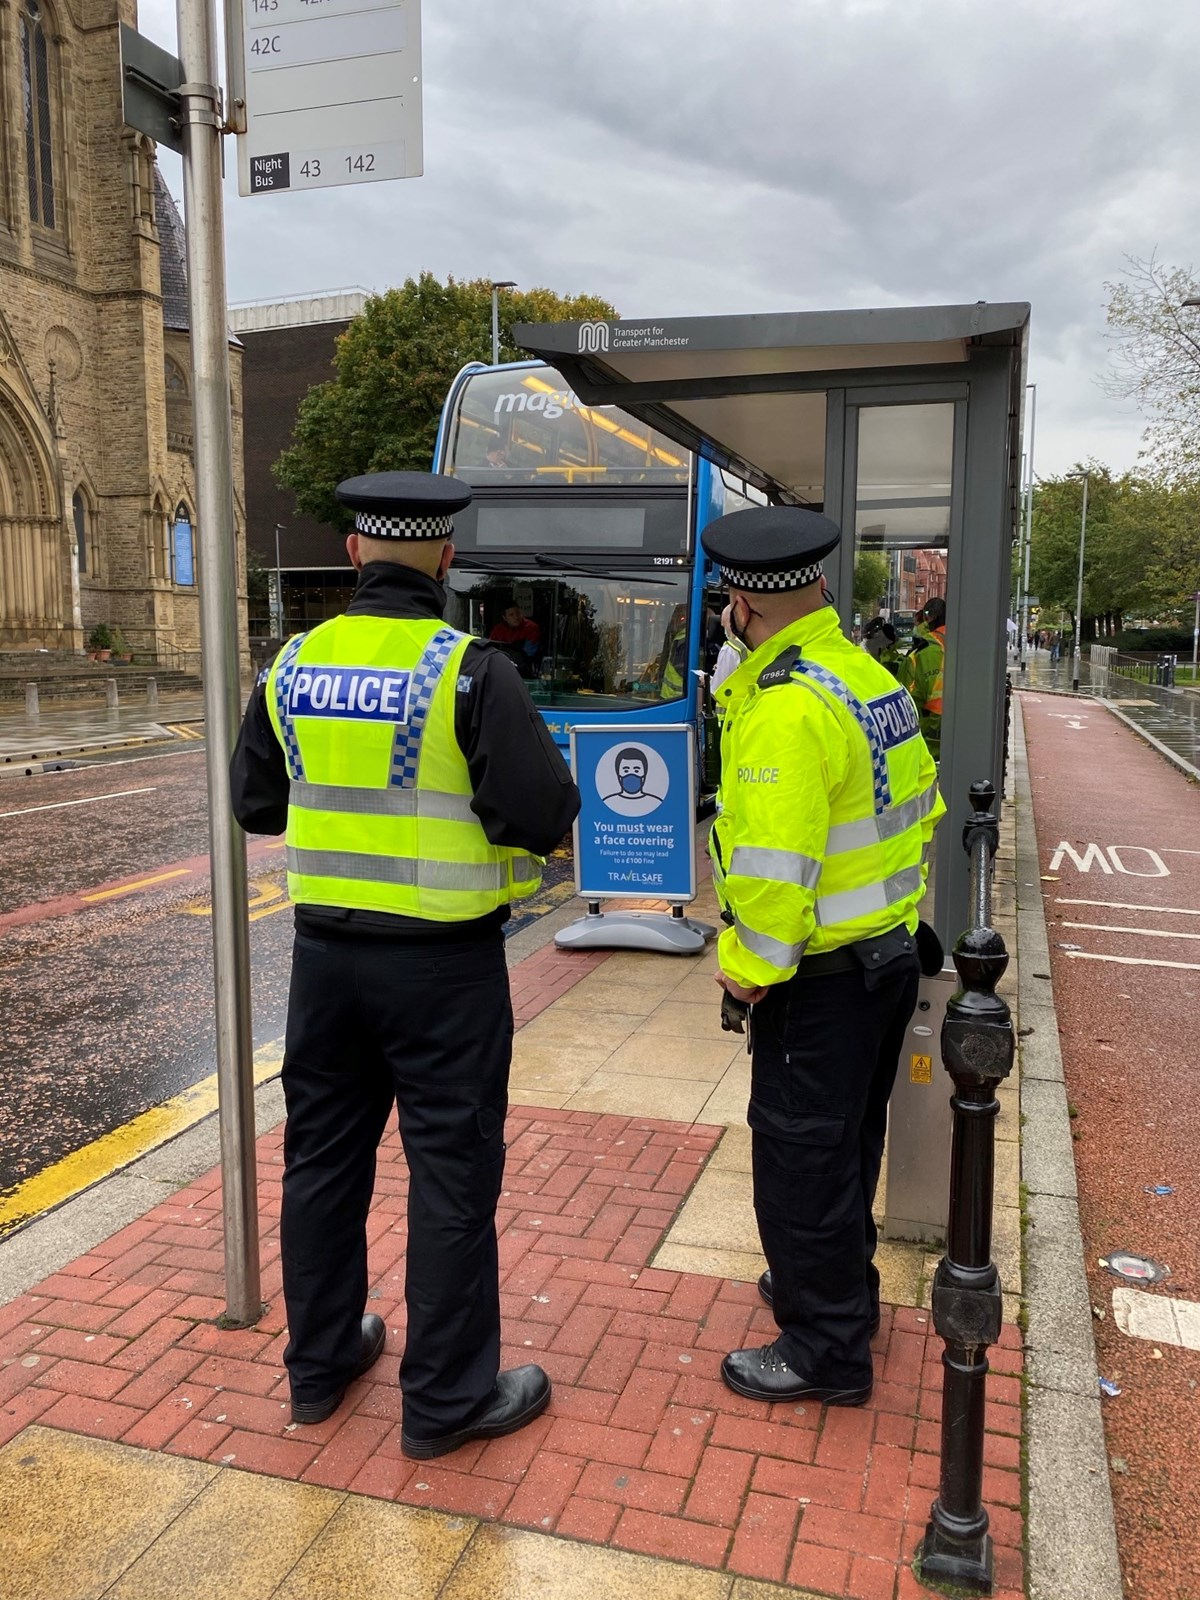 TSP DoA Oxford Rd2 2: Officers from the GMP Transport Unit waiting to board a bus on Oxford Road and ensure students are compling with social distancing and face covering regulations.